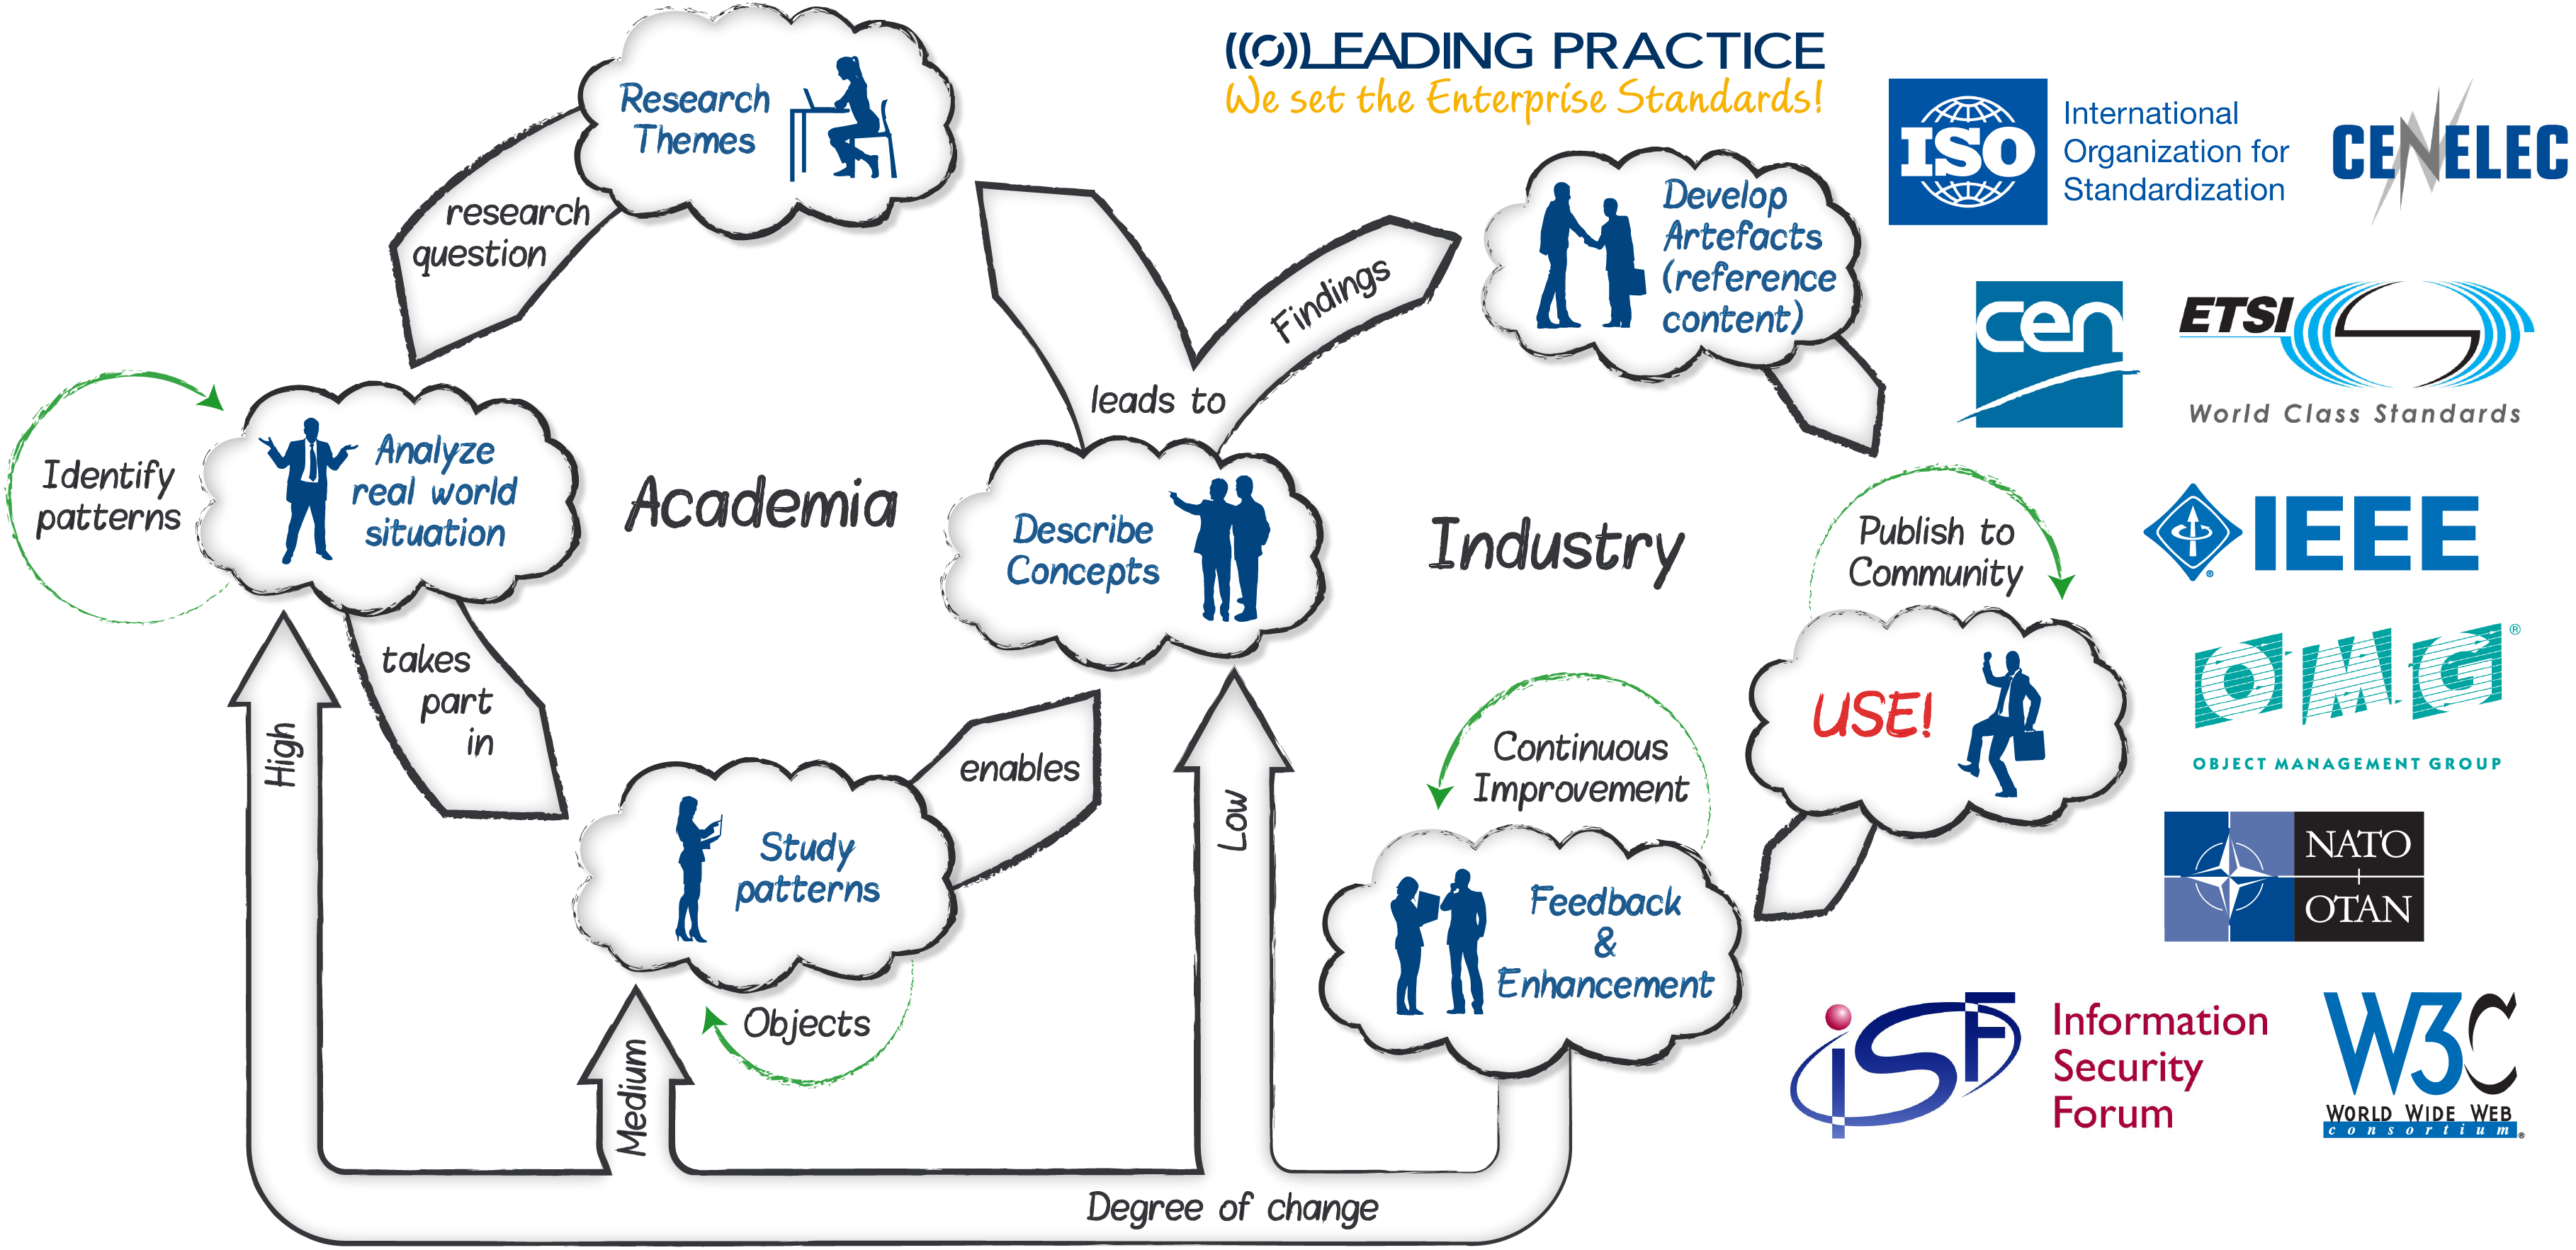 Academic Research & Industry Design Workflow